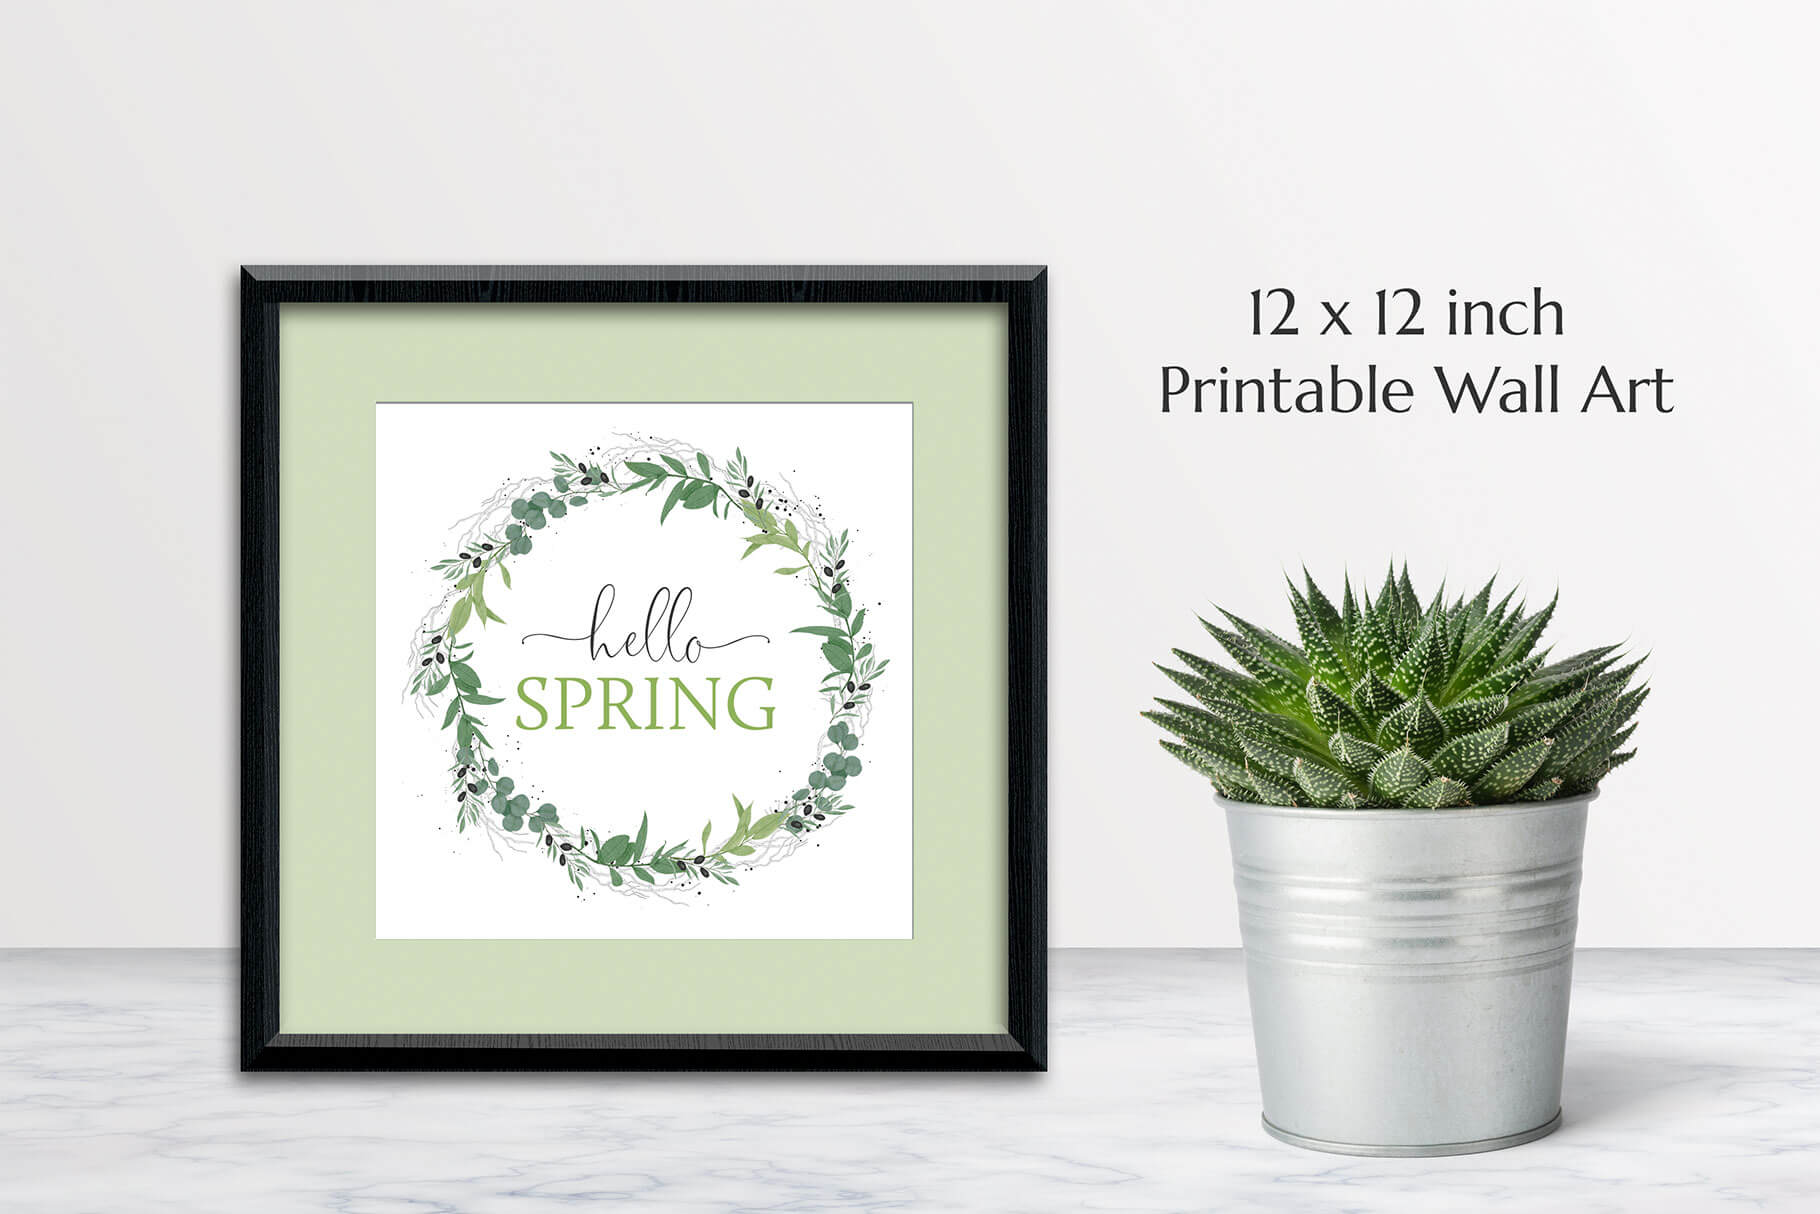 Hello Spring Printable Wall Art